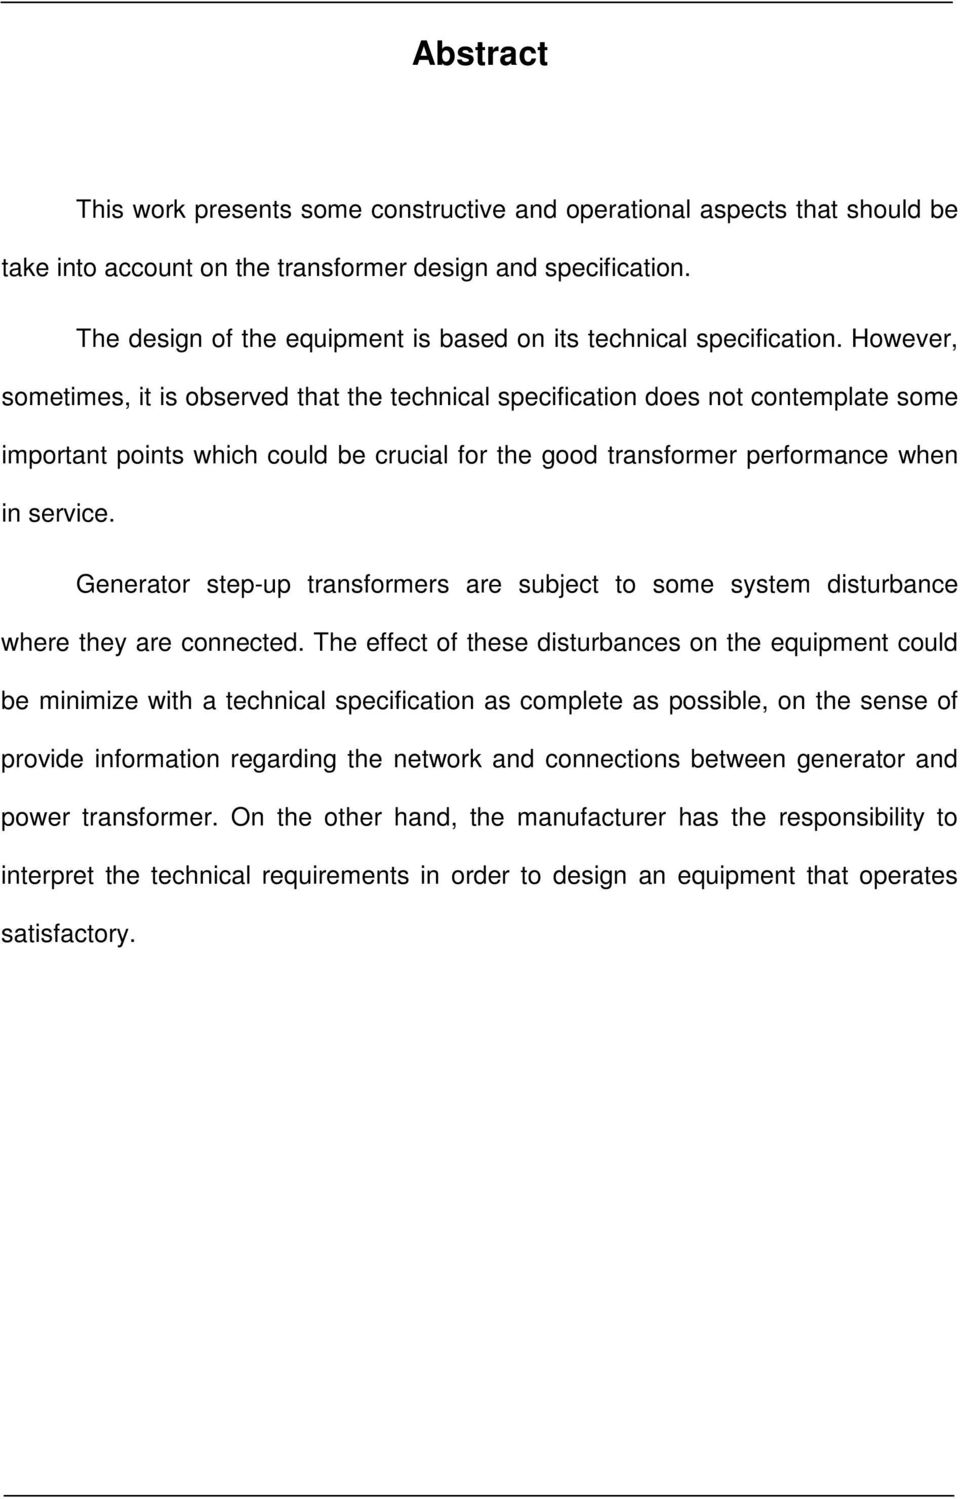 However, sometimes, it is observed that the technical specification does not contemplate some important points which could be crucial for the good transformer performance when in service.